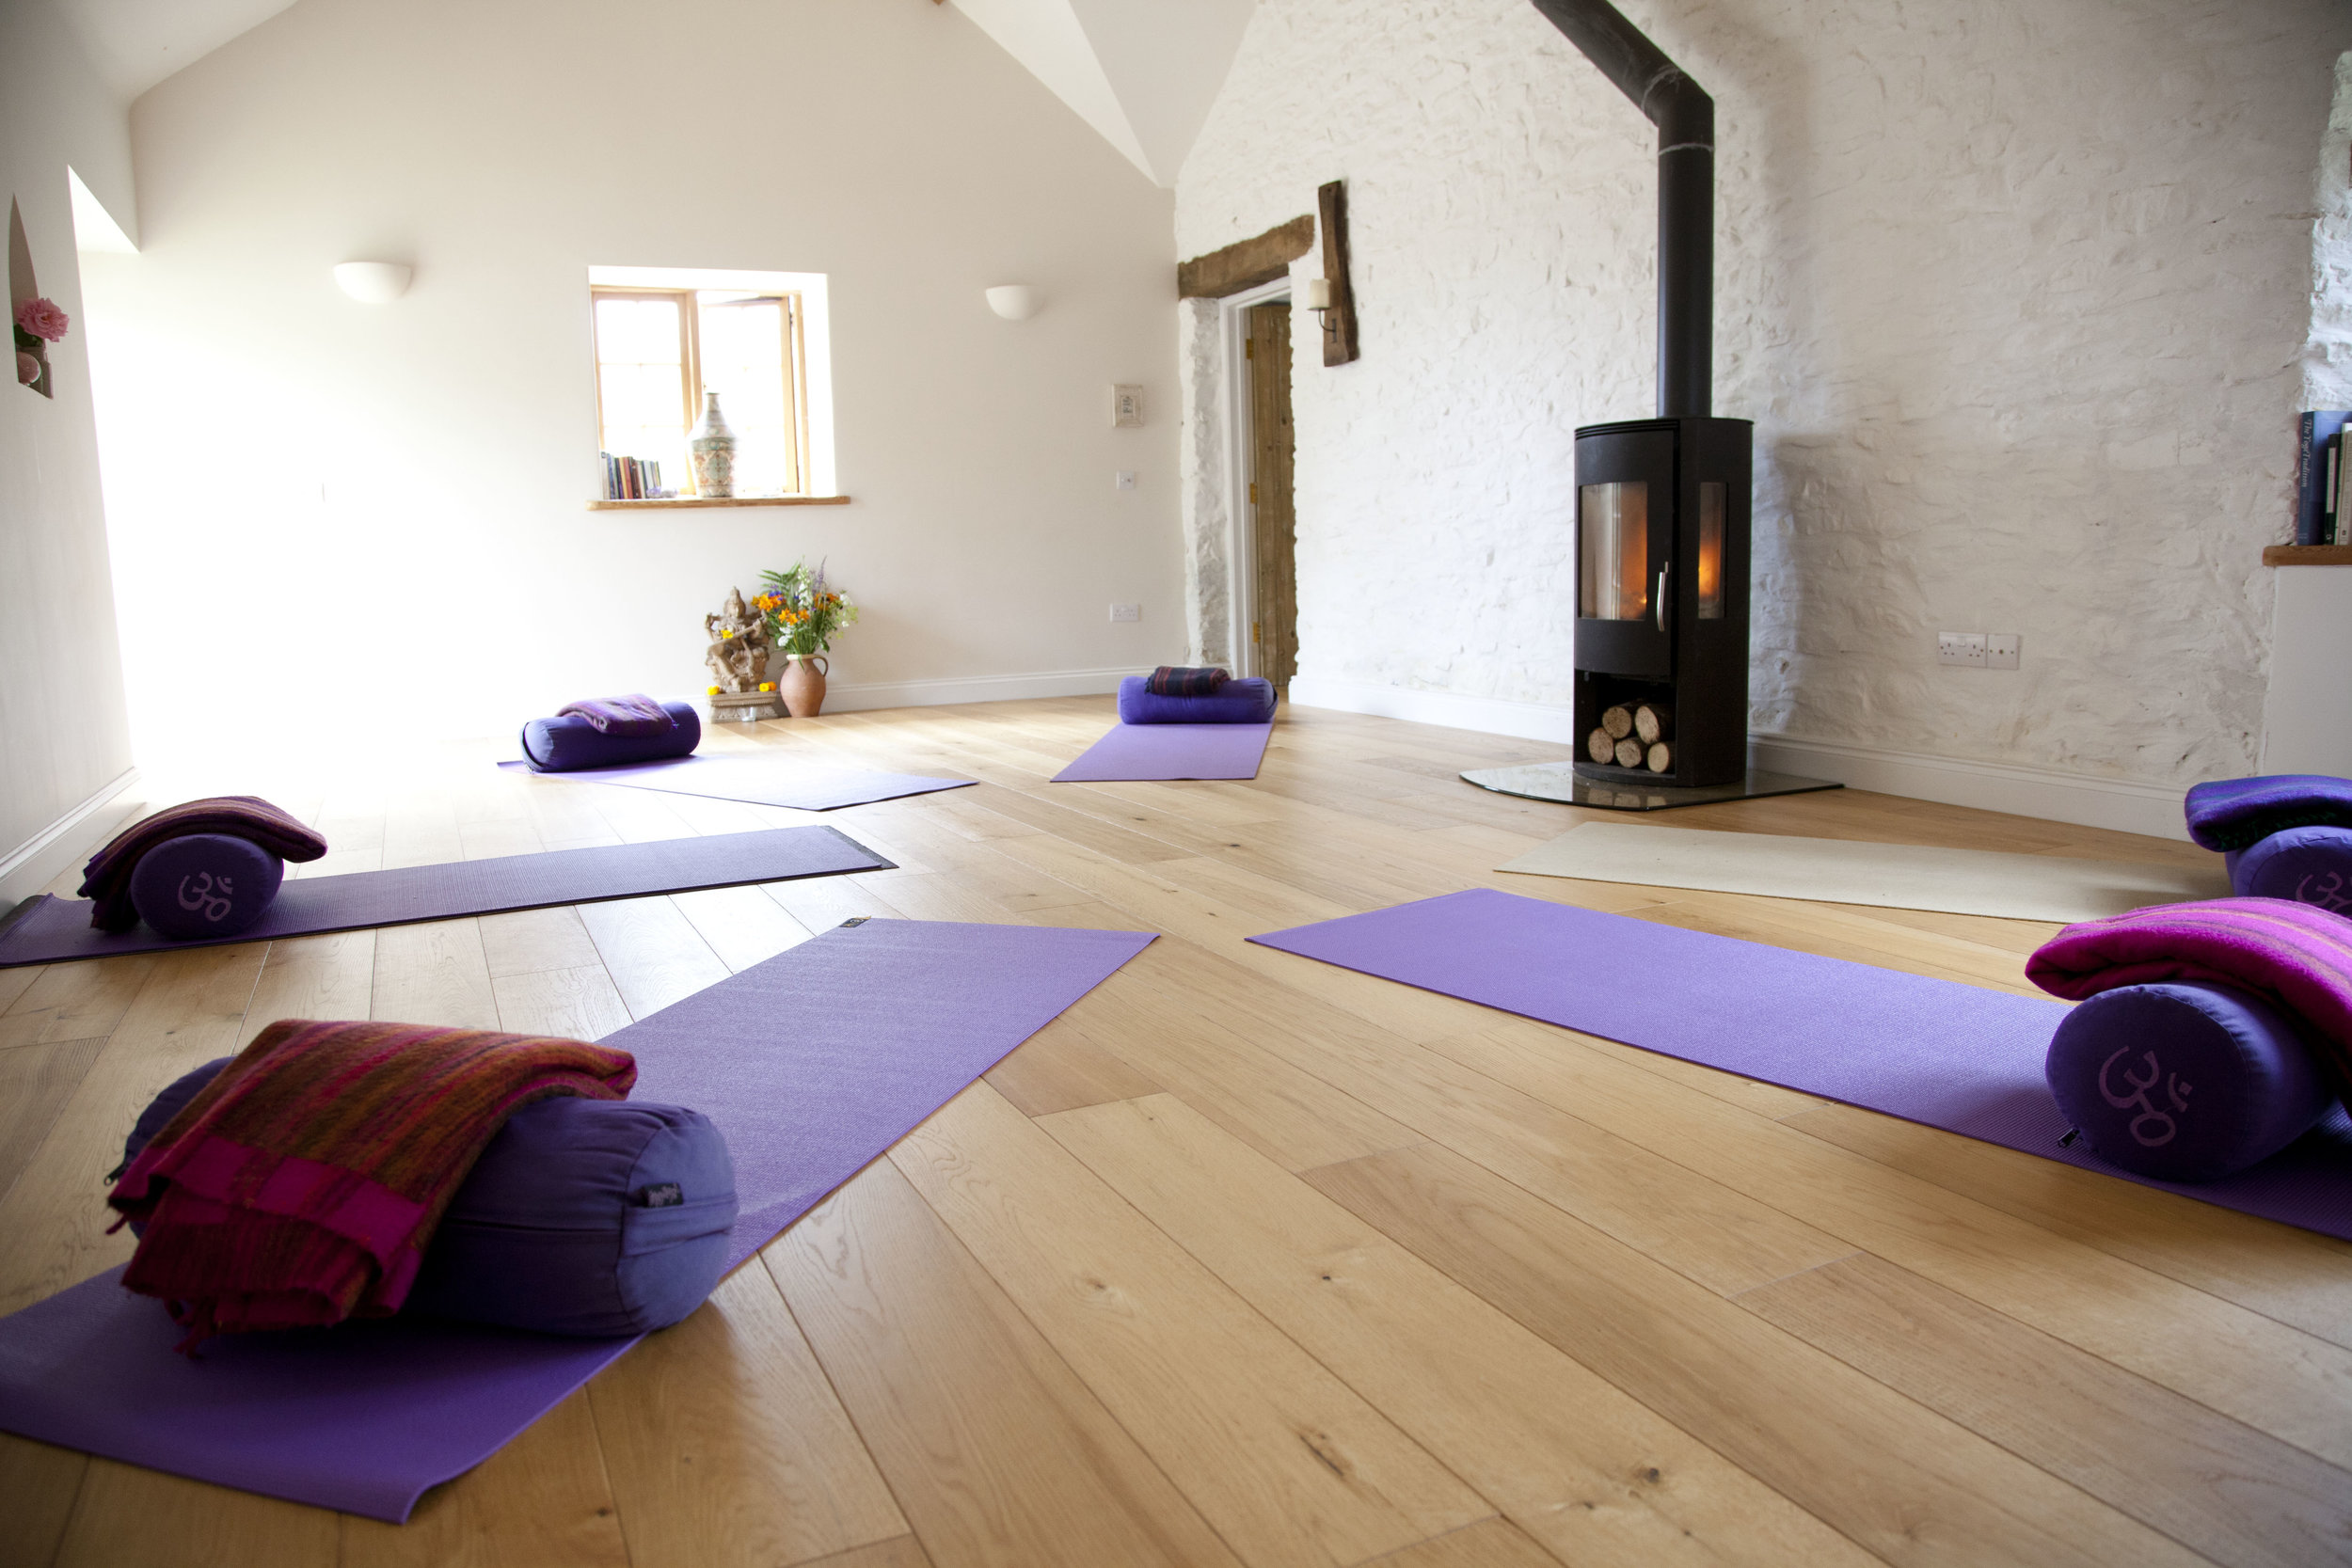 weekly yoga classes - Would you like to learn how to move with more ease and lightness?